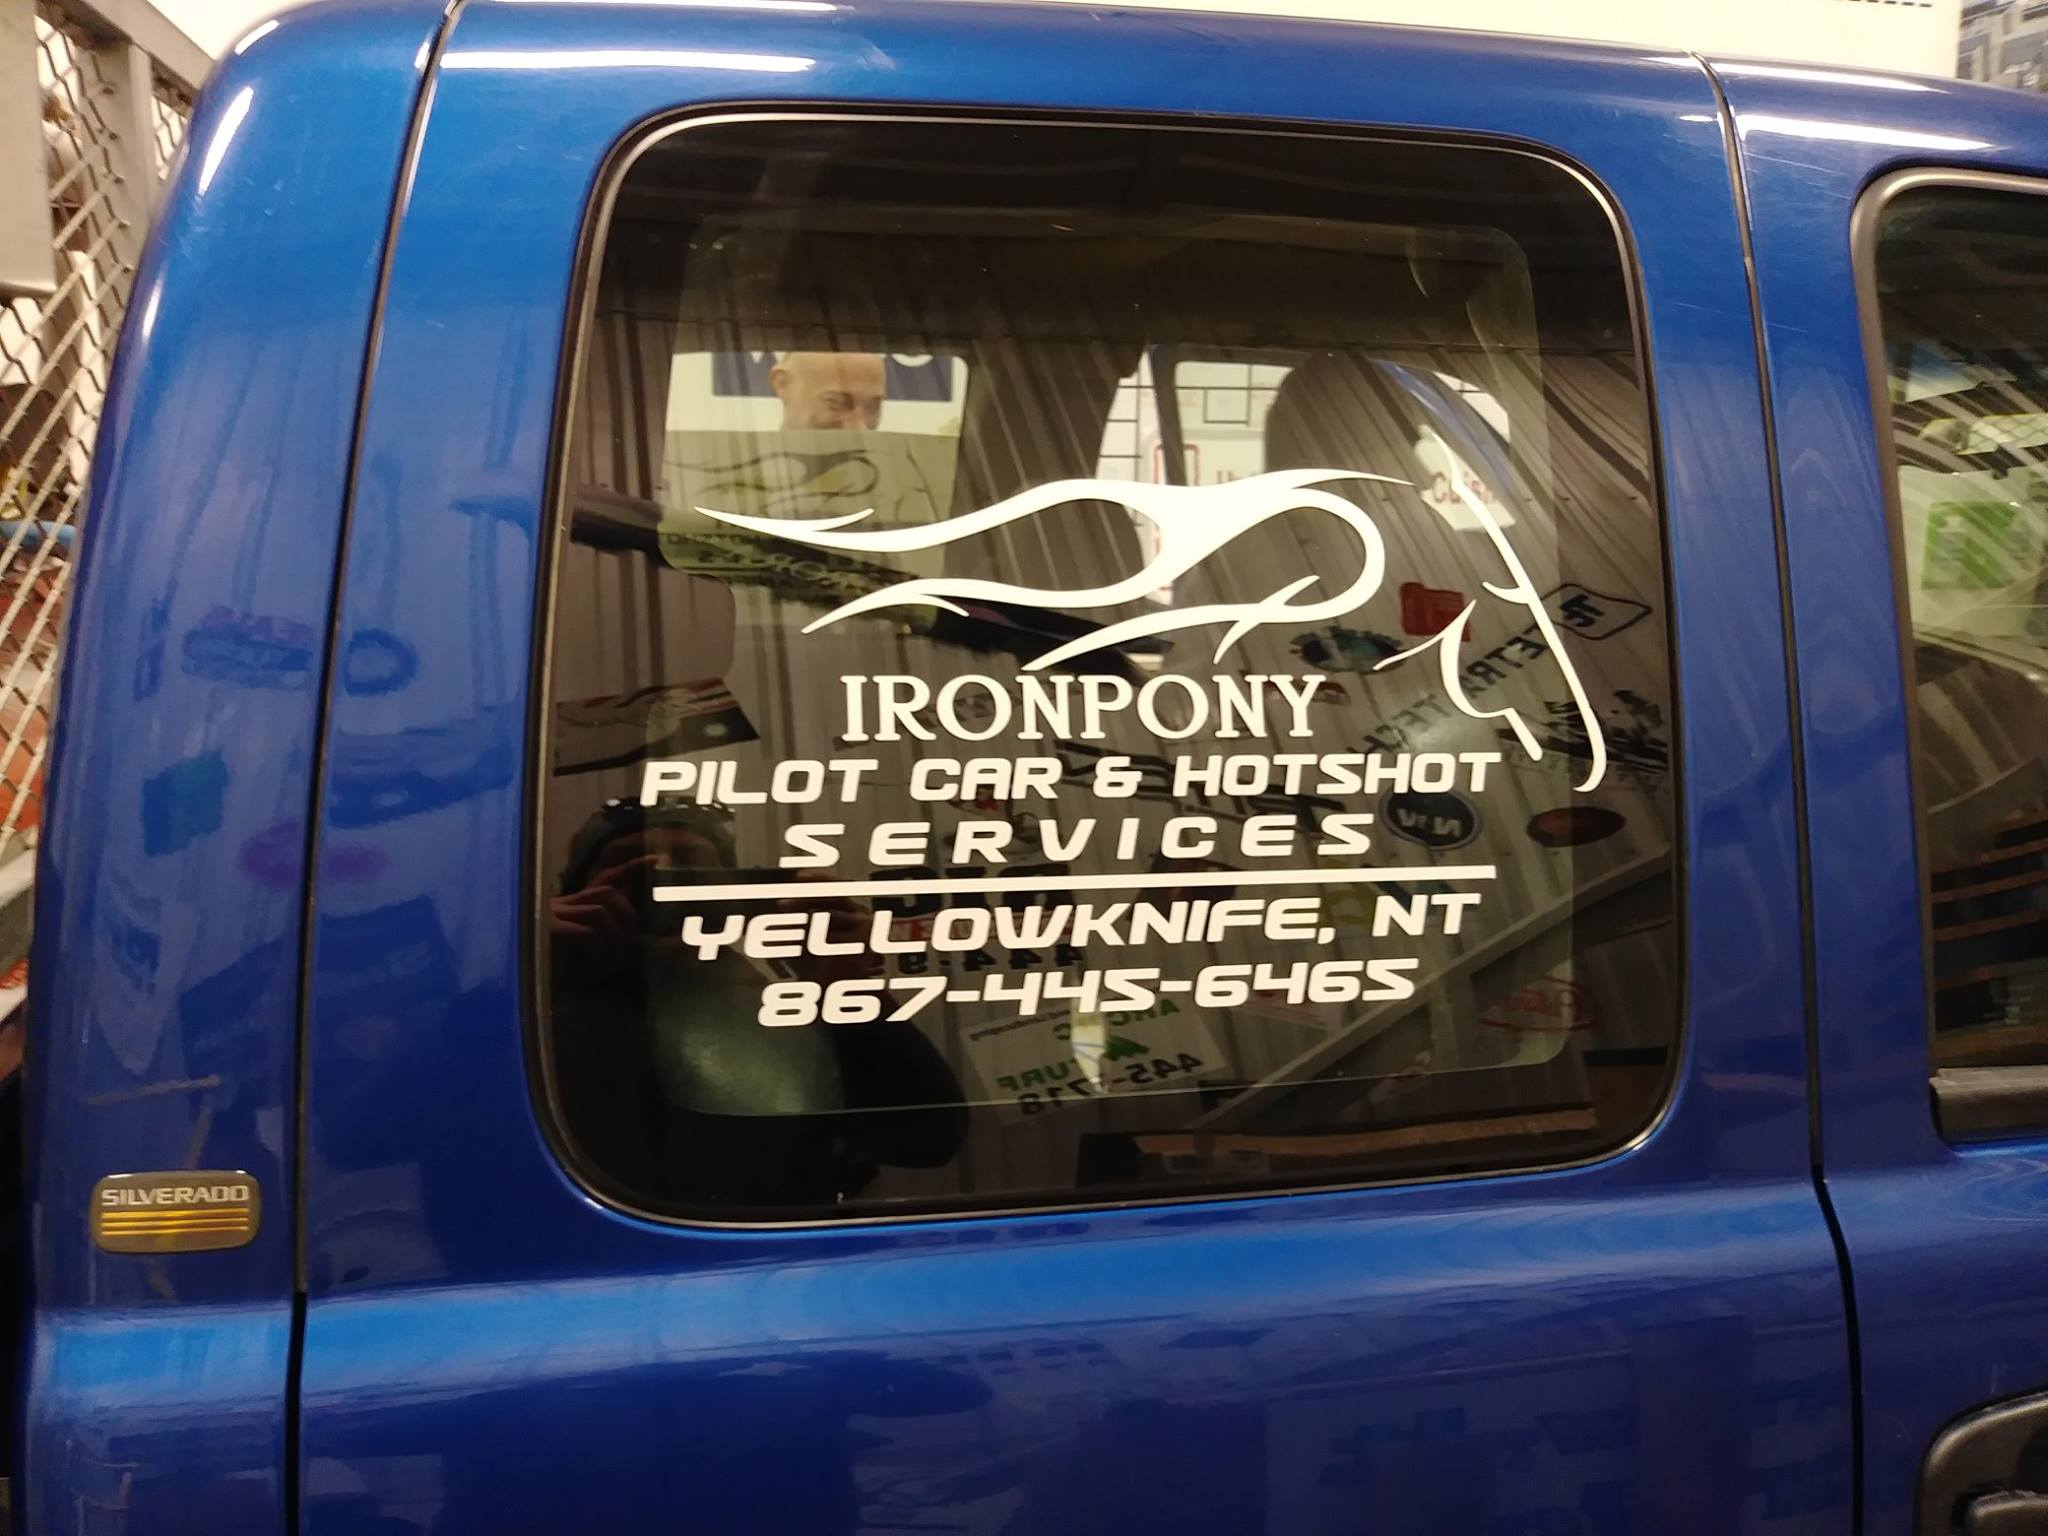 IronPony Pilot Car & Hot Shot Services Vehicle Window Decal.